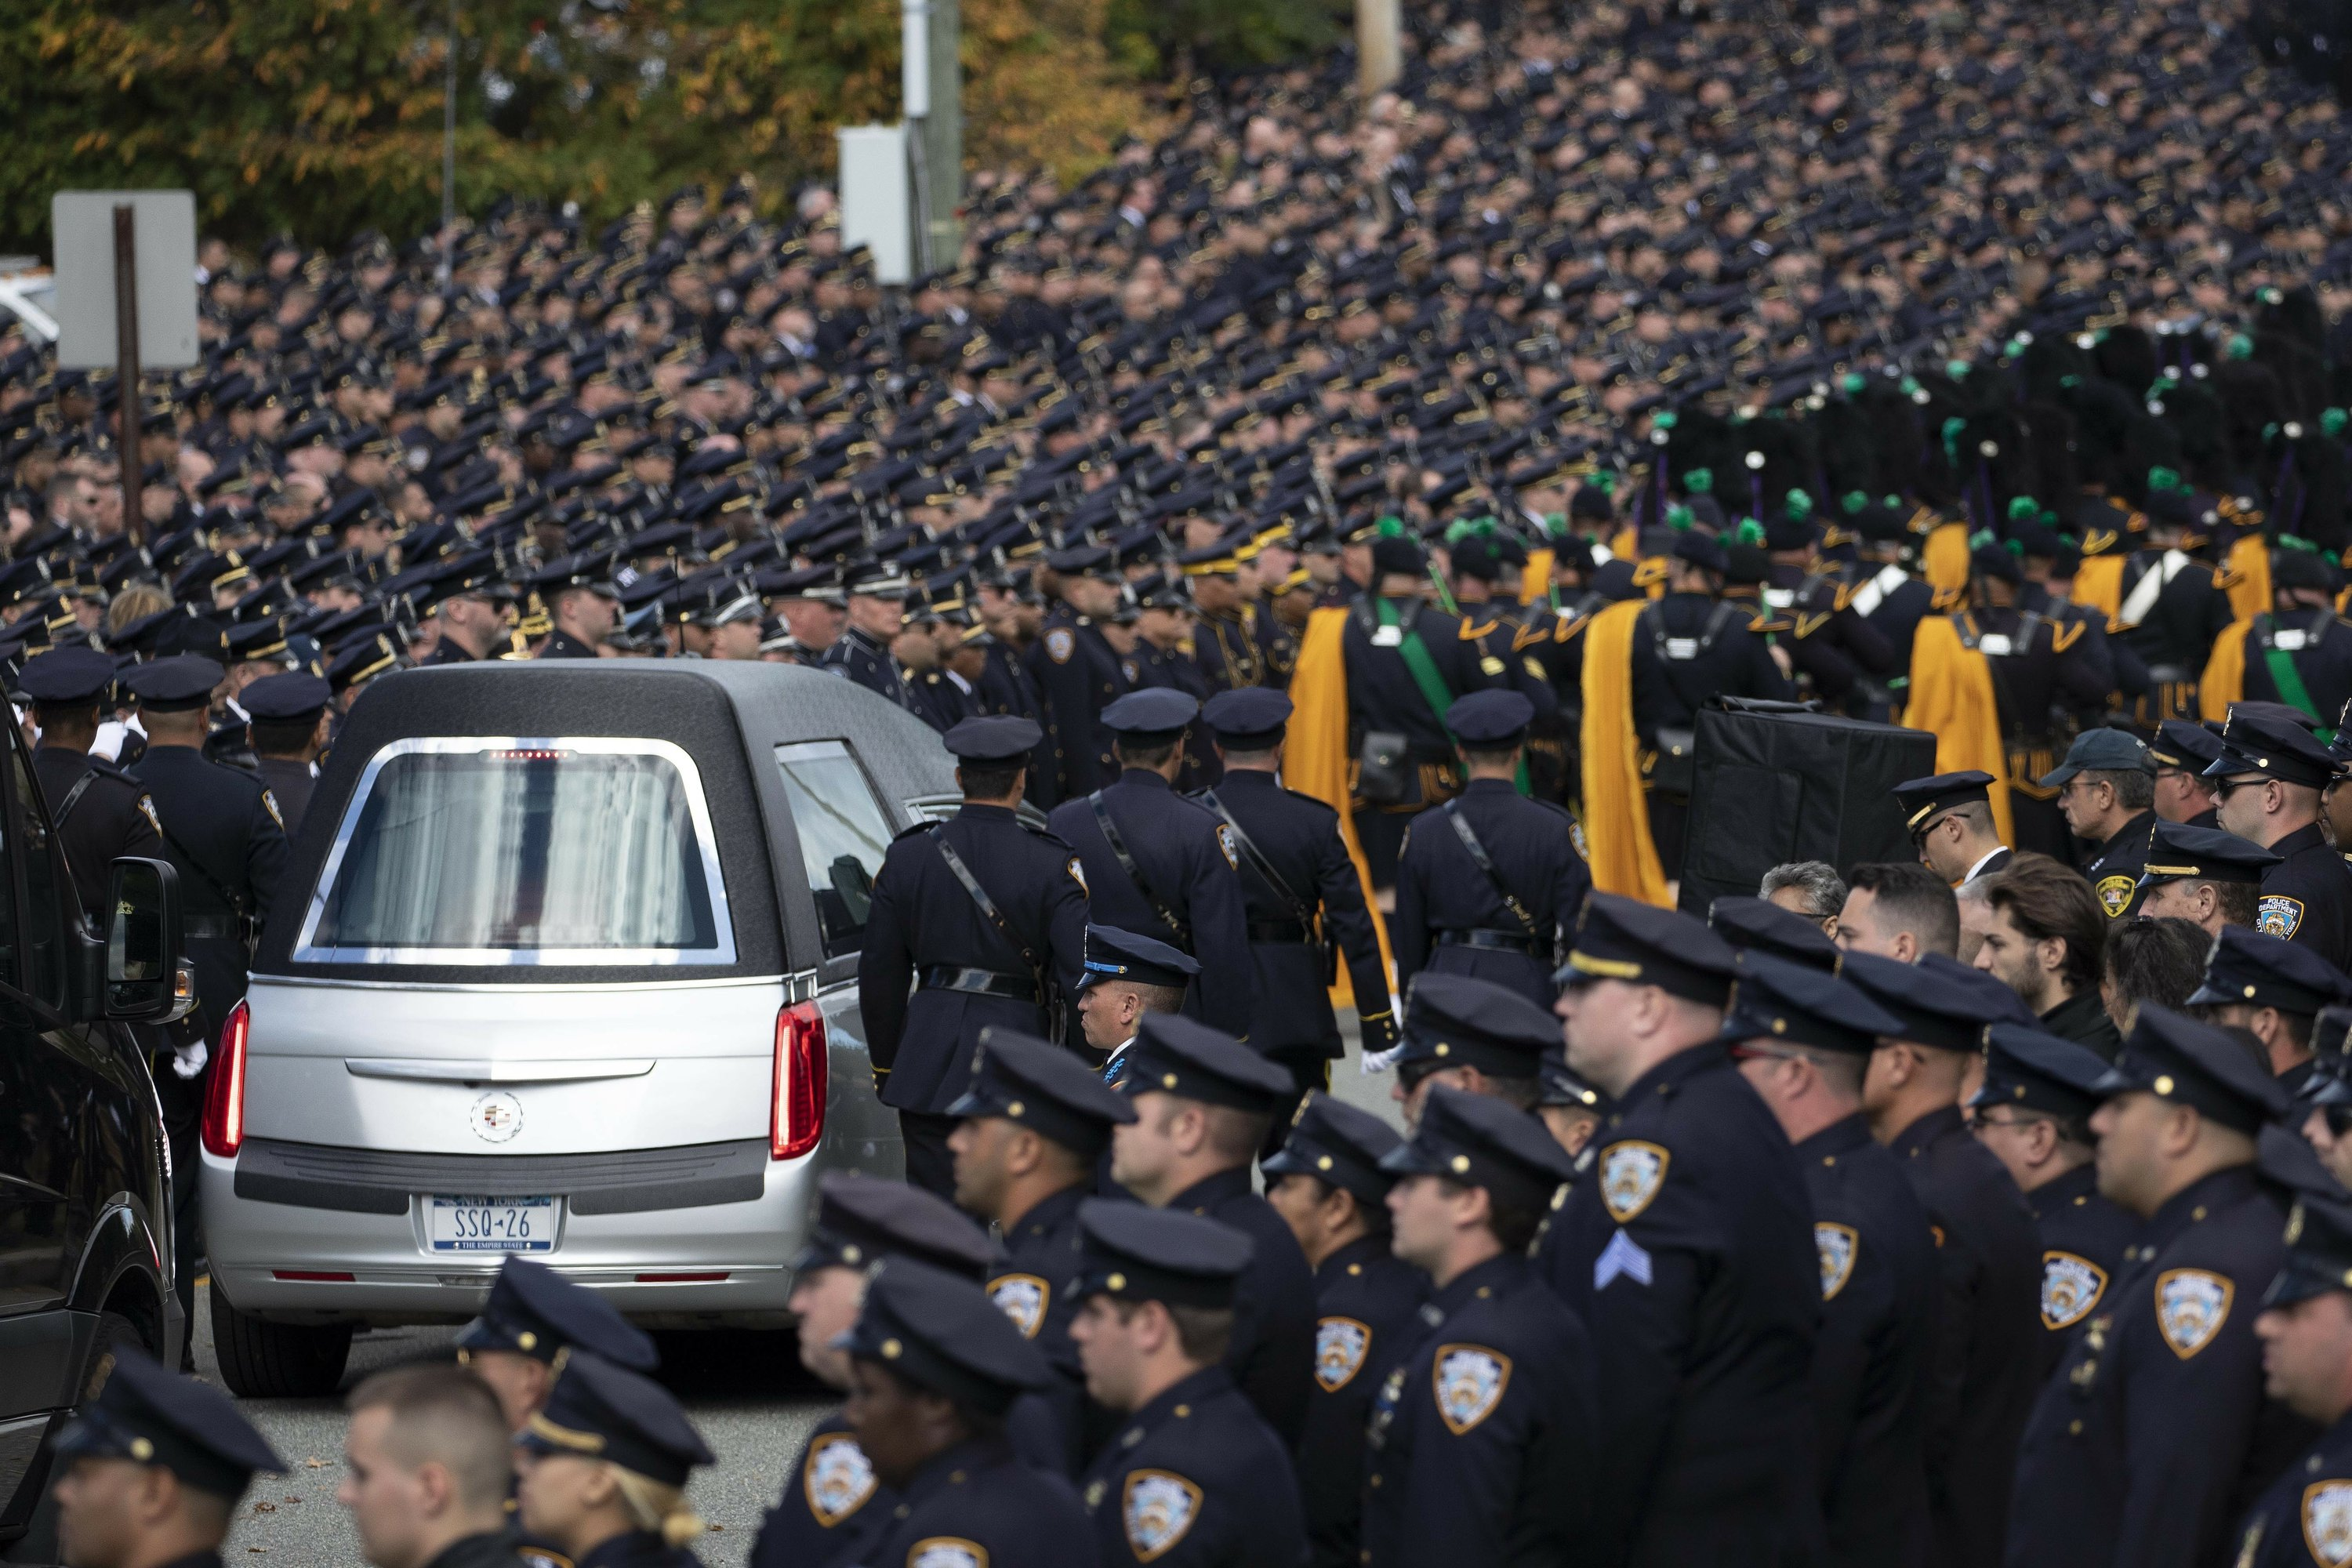 NYPD officer killed by friendly fire is hailed as a hero